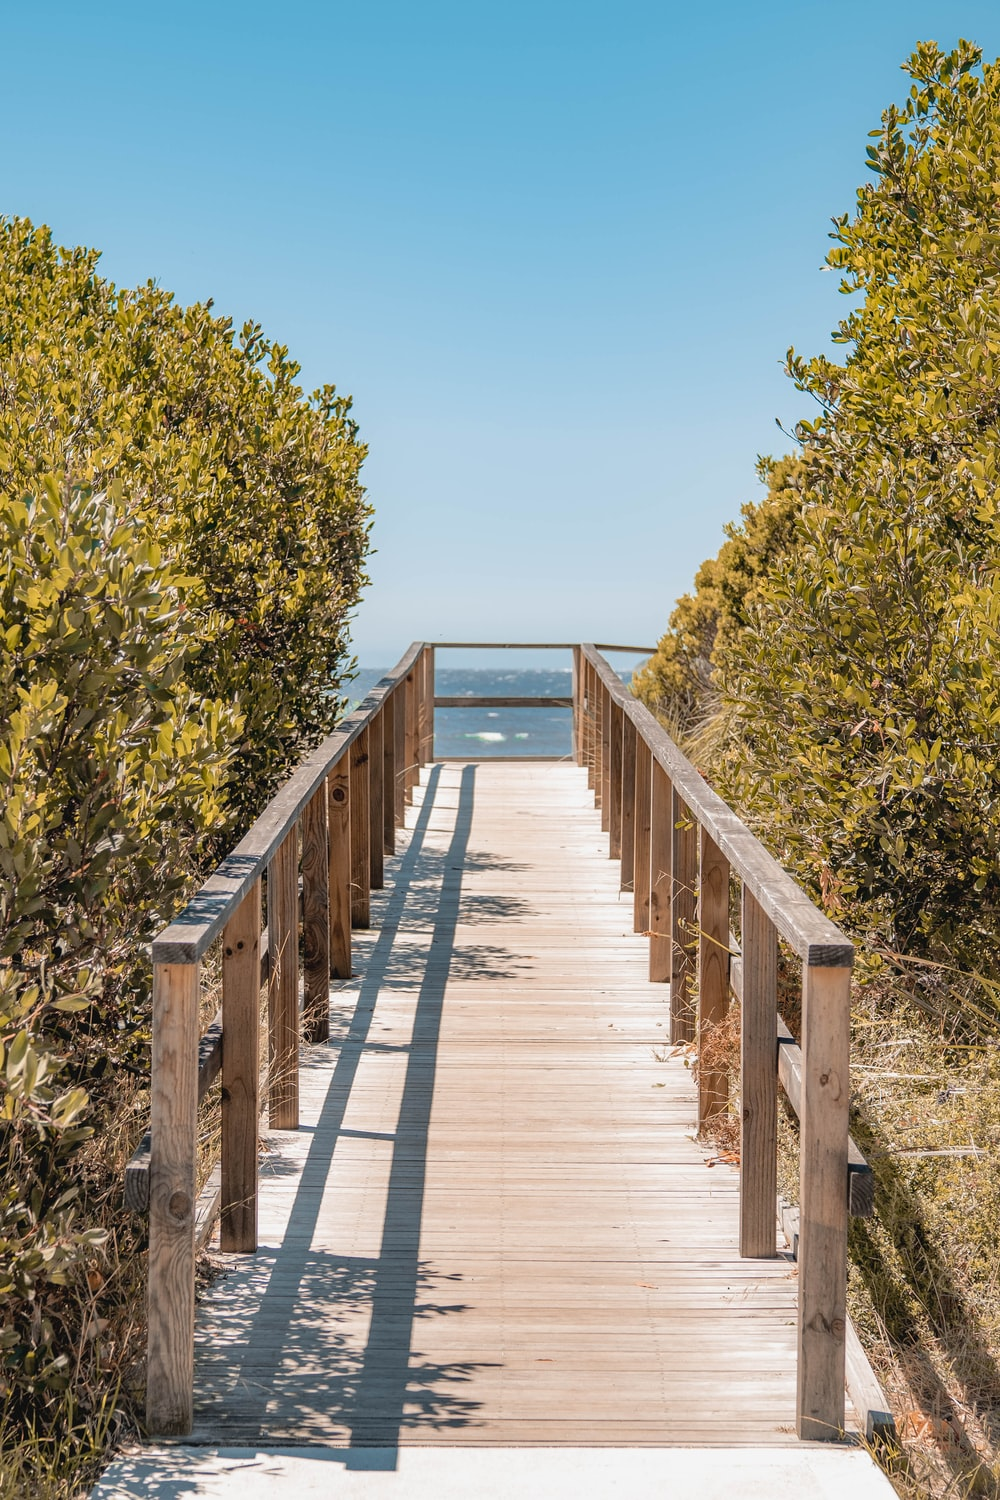 brown wooden dock near green trees under blue sky during daytime